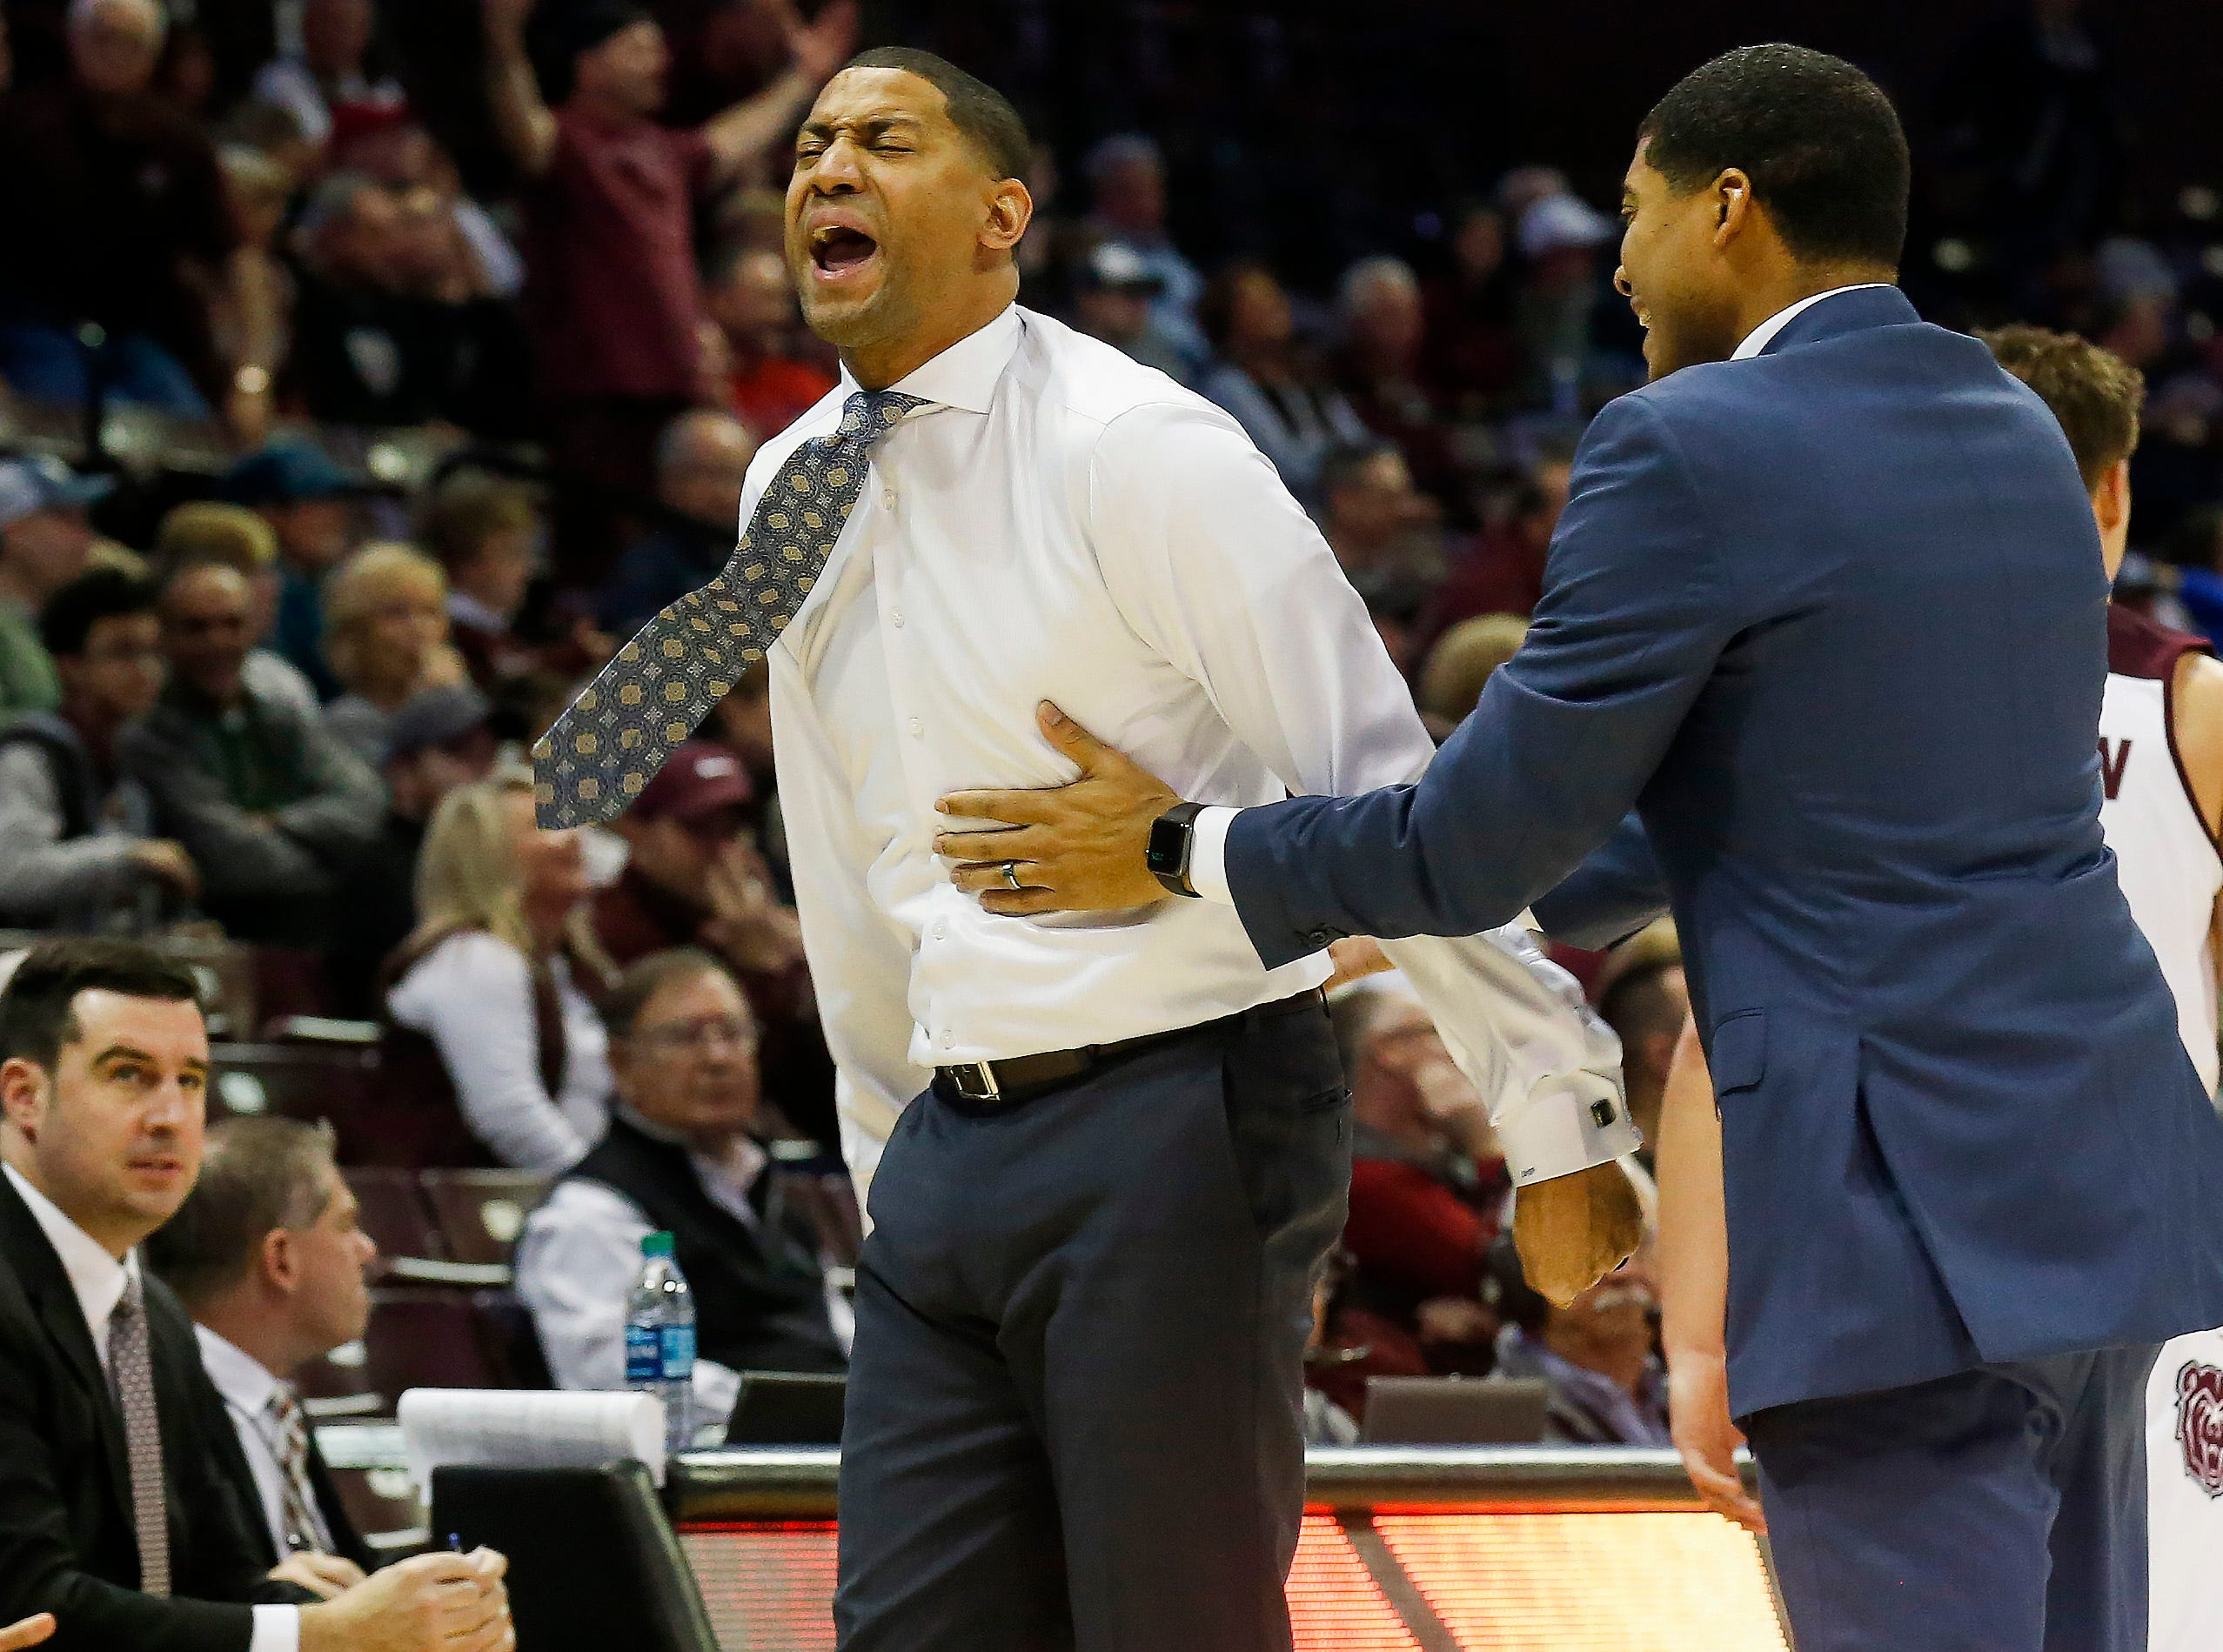 Missouri State University head coach Dana Ford reacts to a call during the Bears 82-66 loss to Valparaiso at JQH Arena on Saturday, Jan. 5, 2018.